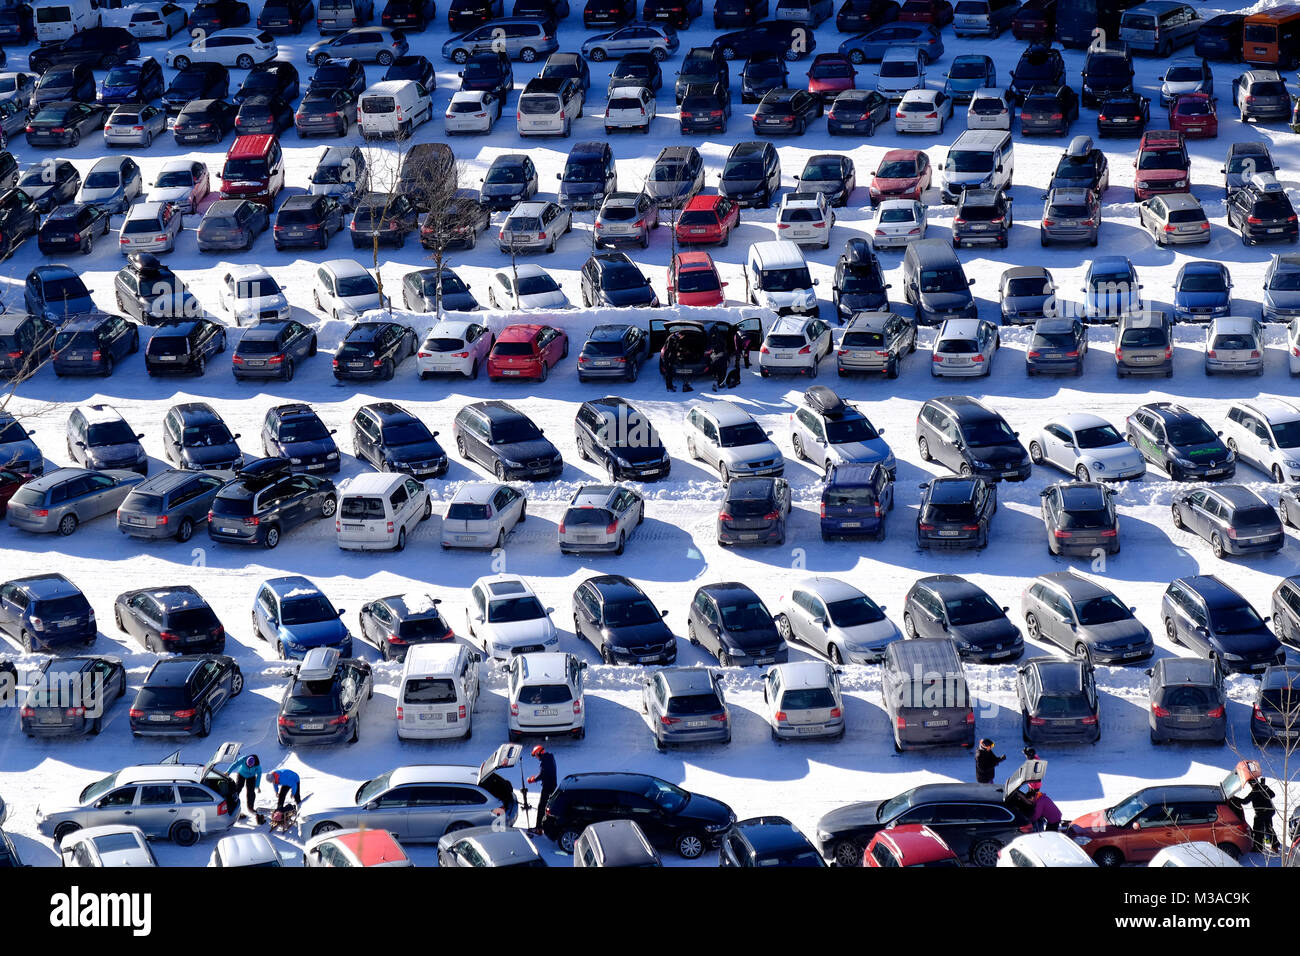 Ski resort Sudelfeld-Bayrischzell, Bavaria, Germany. Car park. - Stock Image